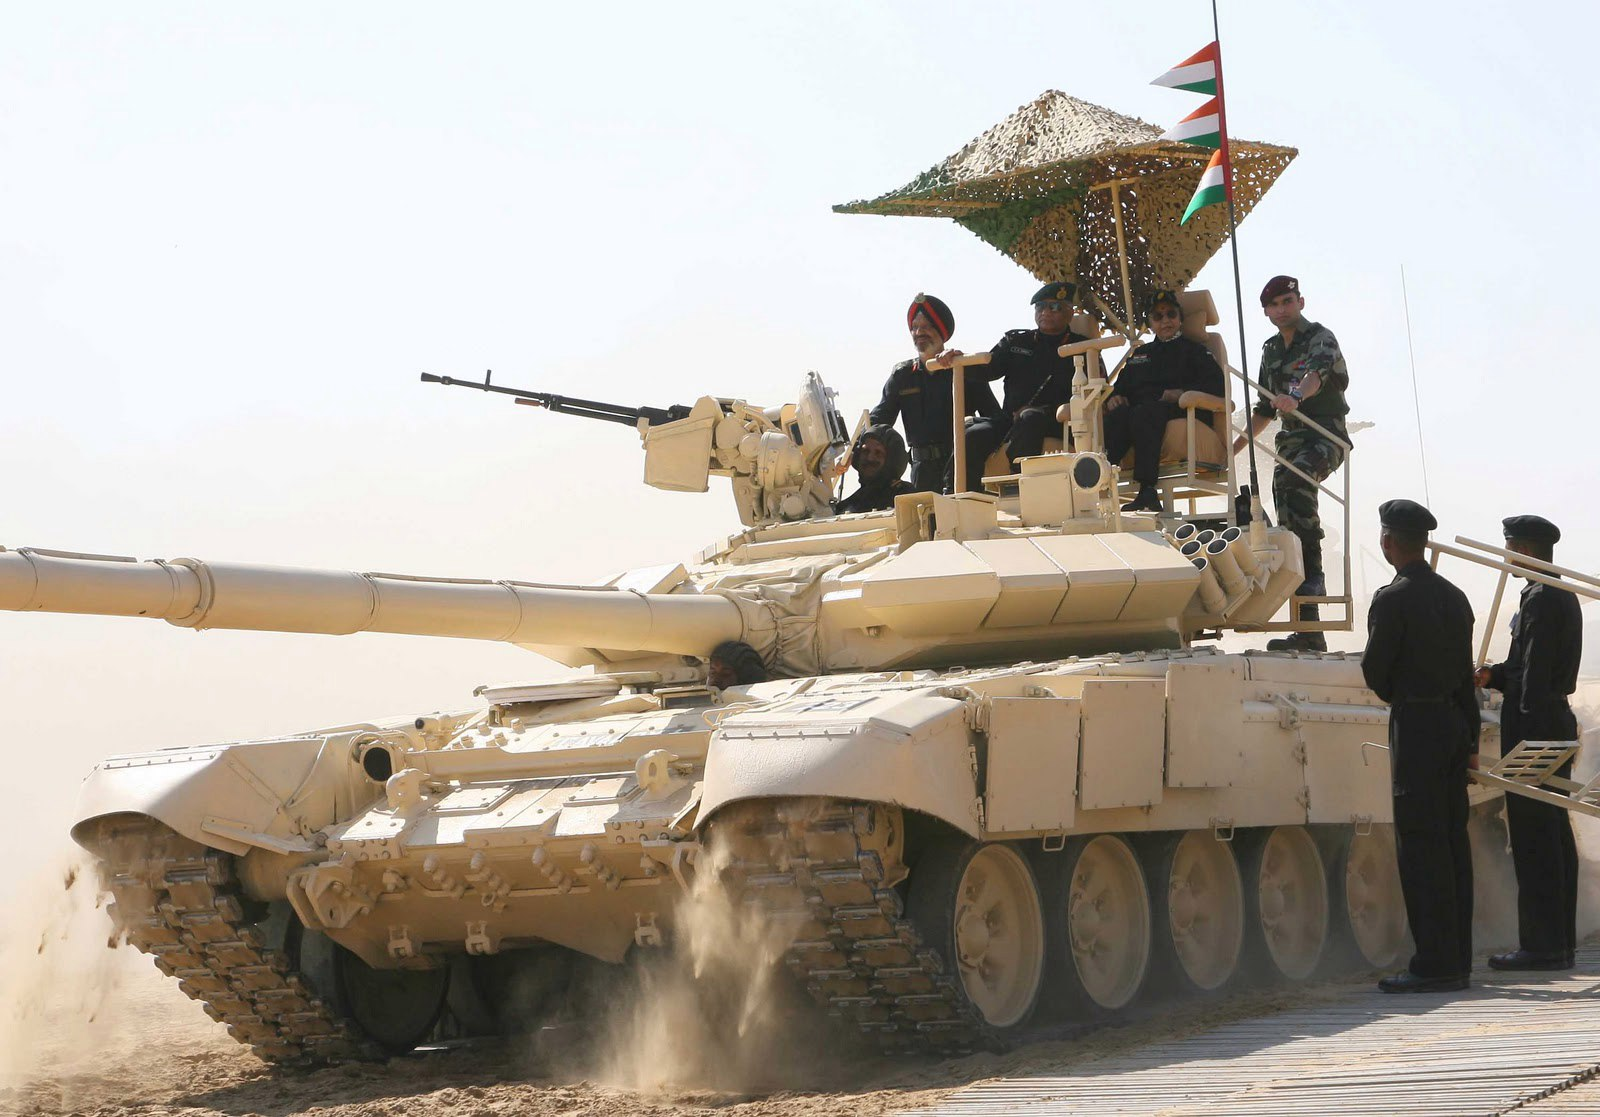 T-90 tanks in Indian Army - Page 4 O4EUQg0eacI